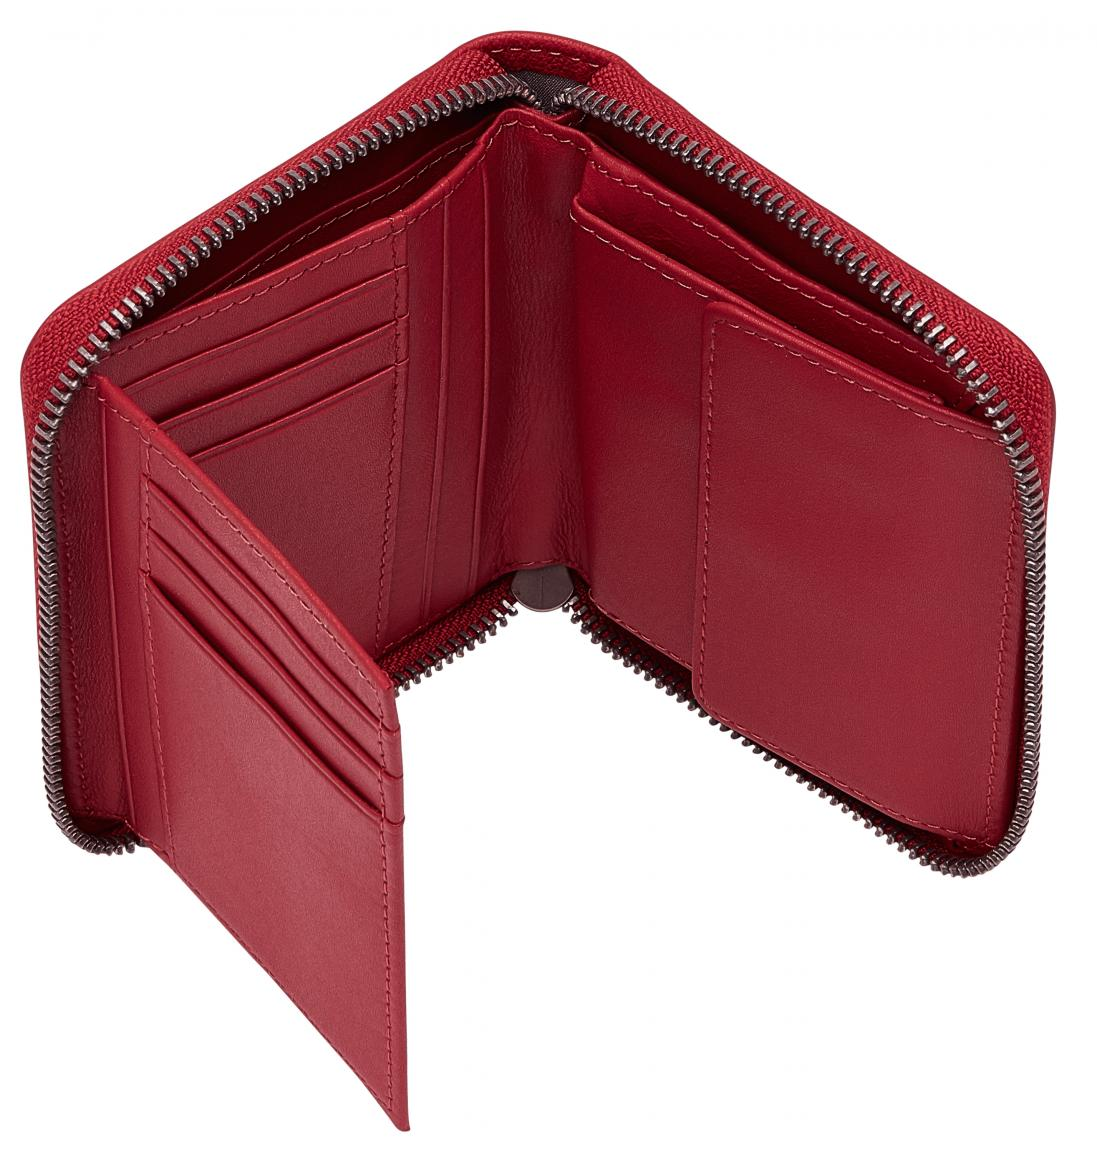 Geldtäschchen Conny Liebeskind Berlin RFID Harris red pepper hellrot Leder Zipper